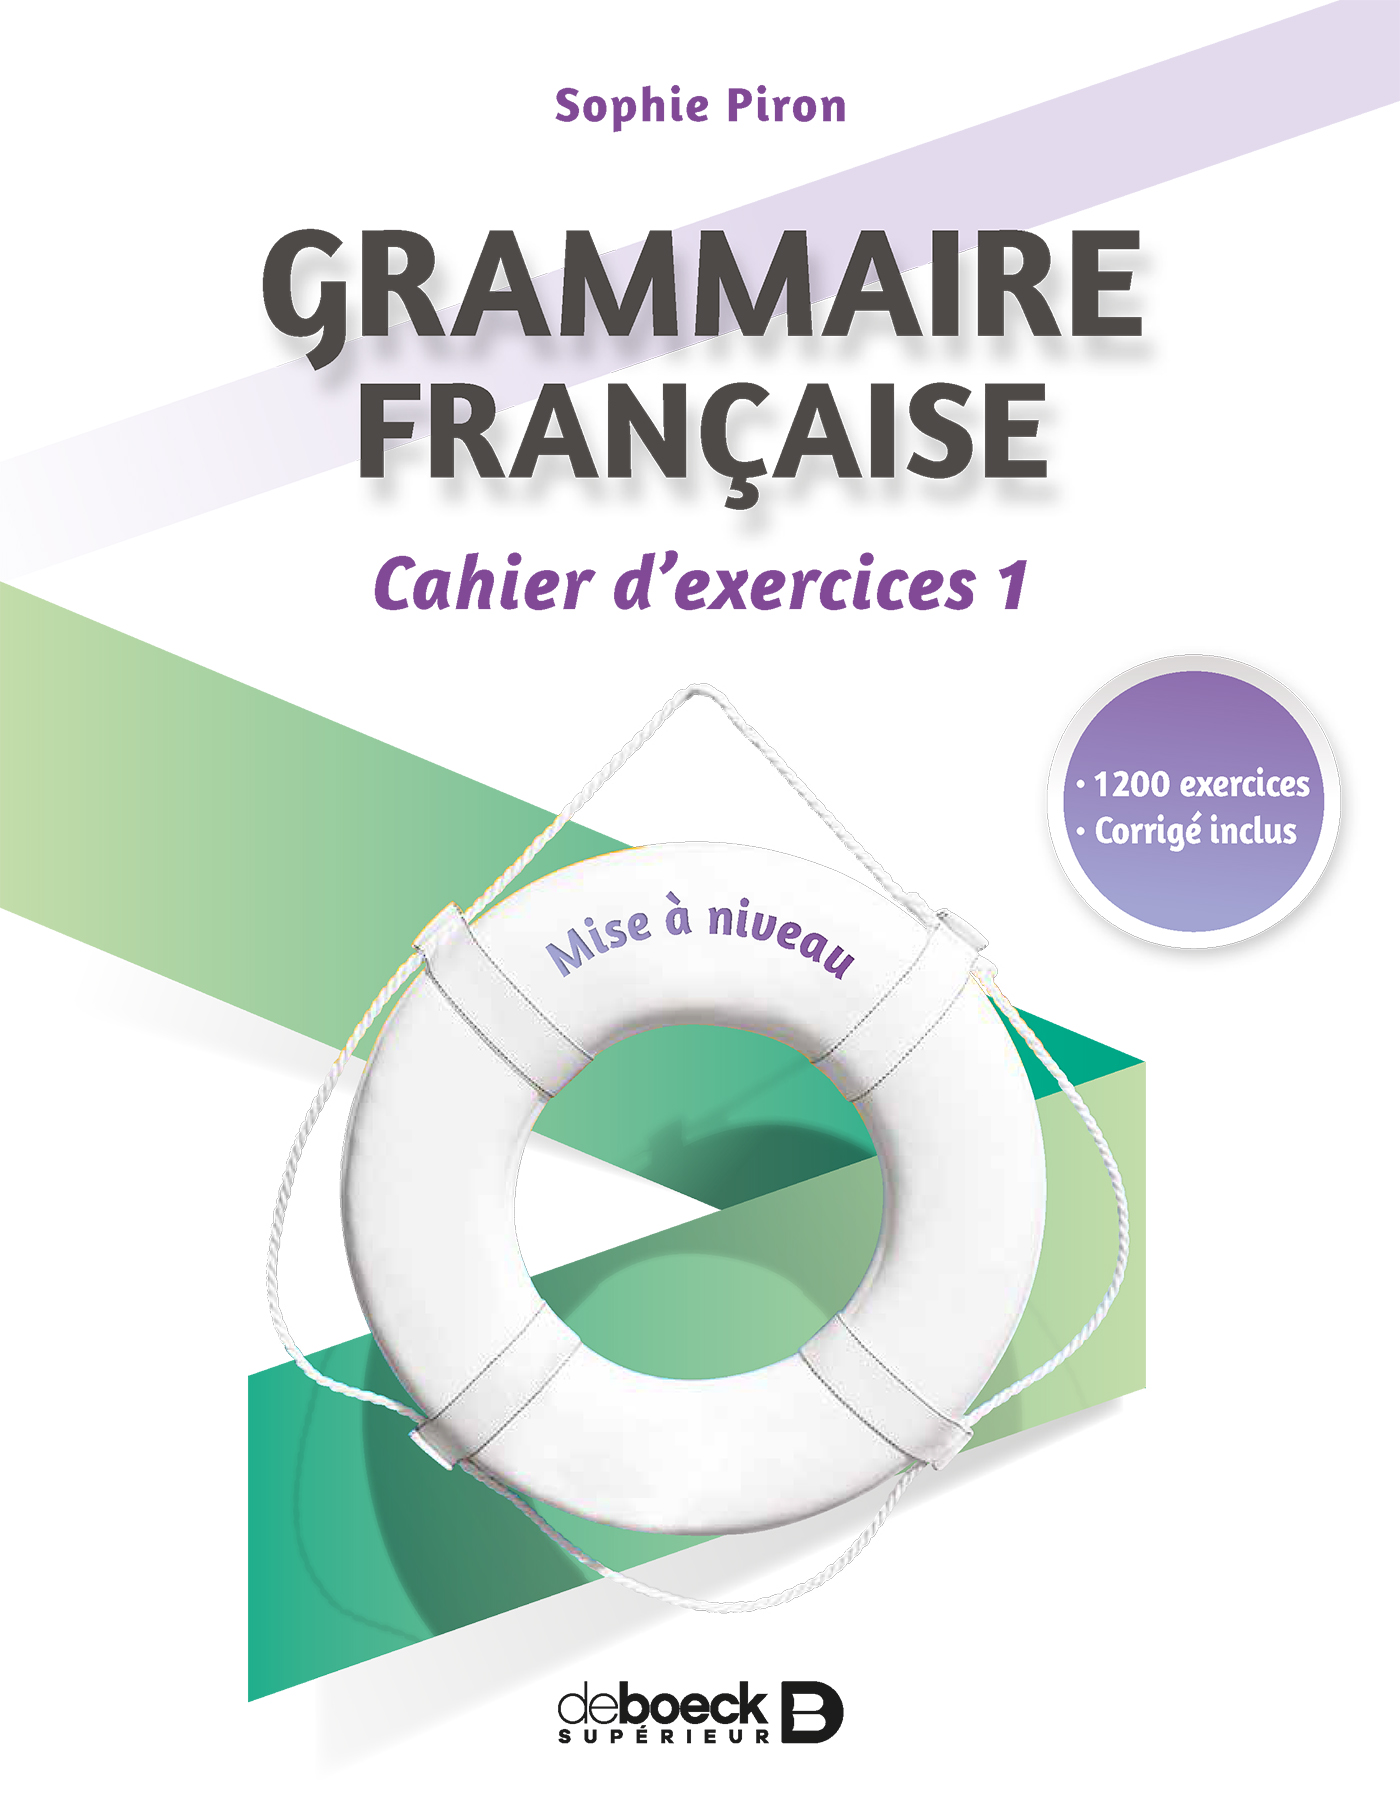 Grammaire Francaise Cahier D Exercices 1